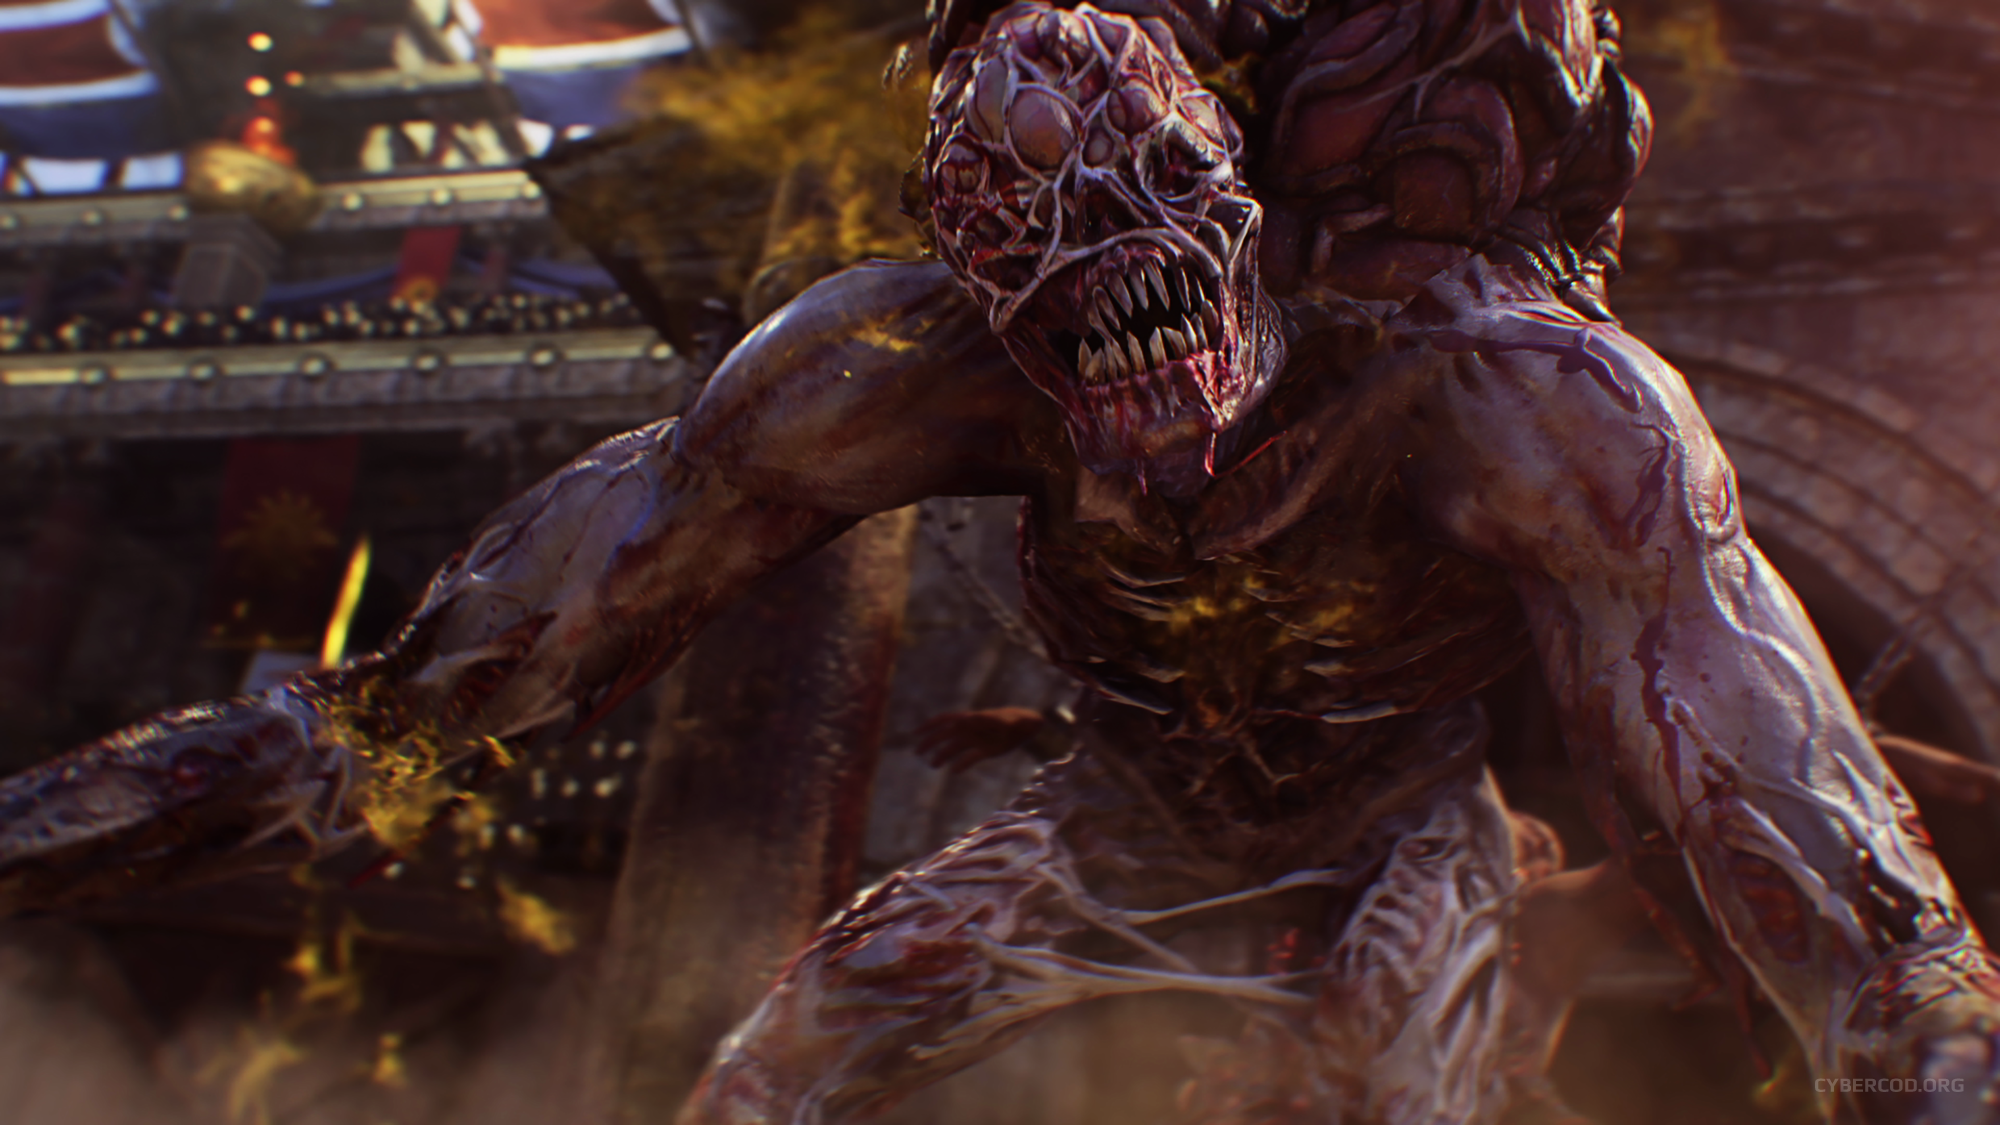 Call of Duty: Black Ops 4 Zombie Wallpapers